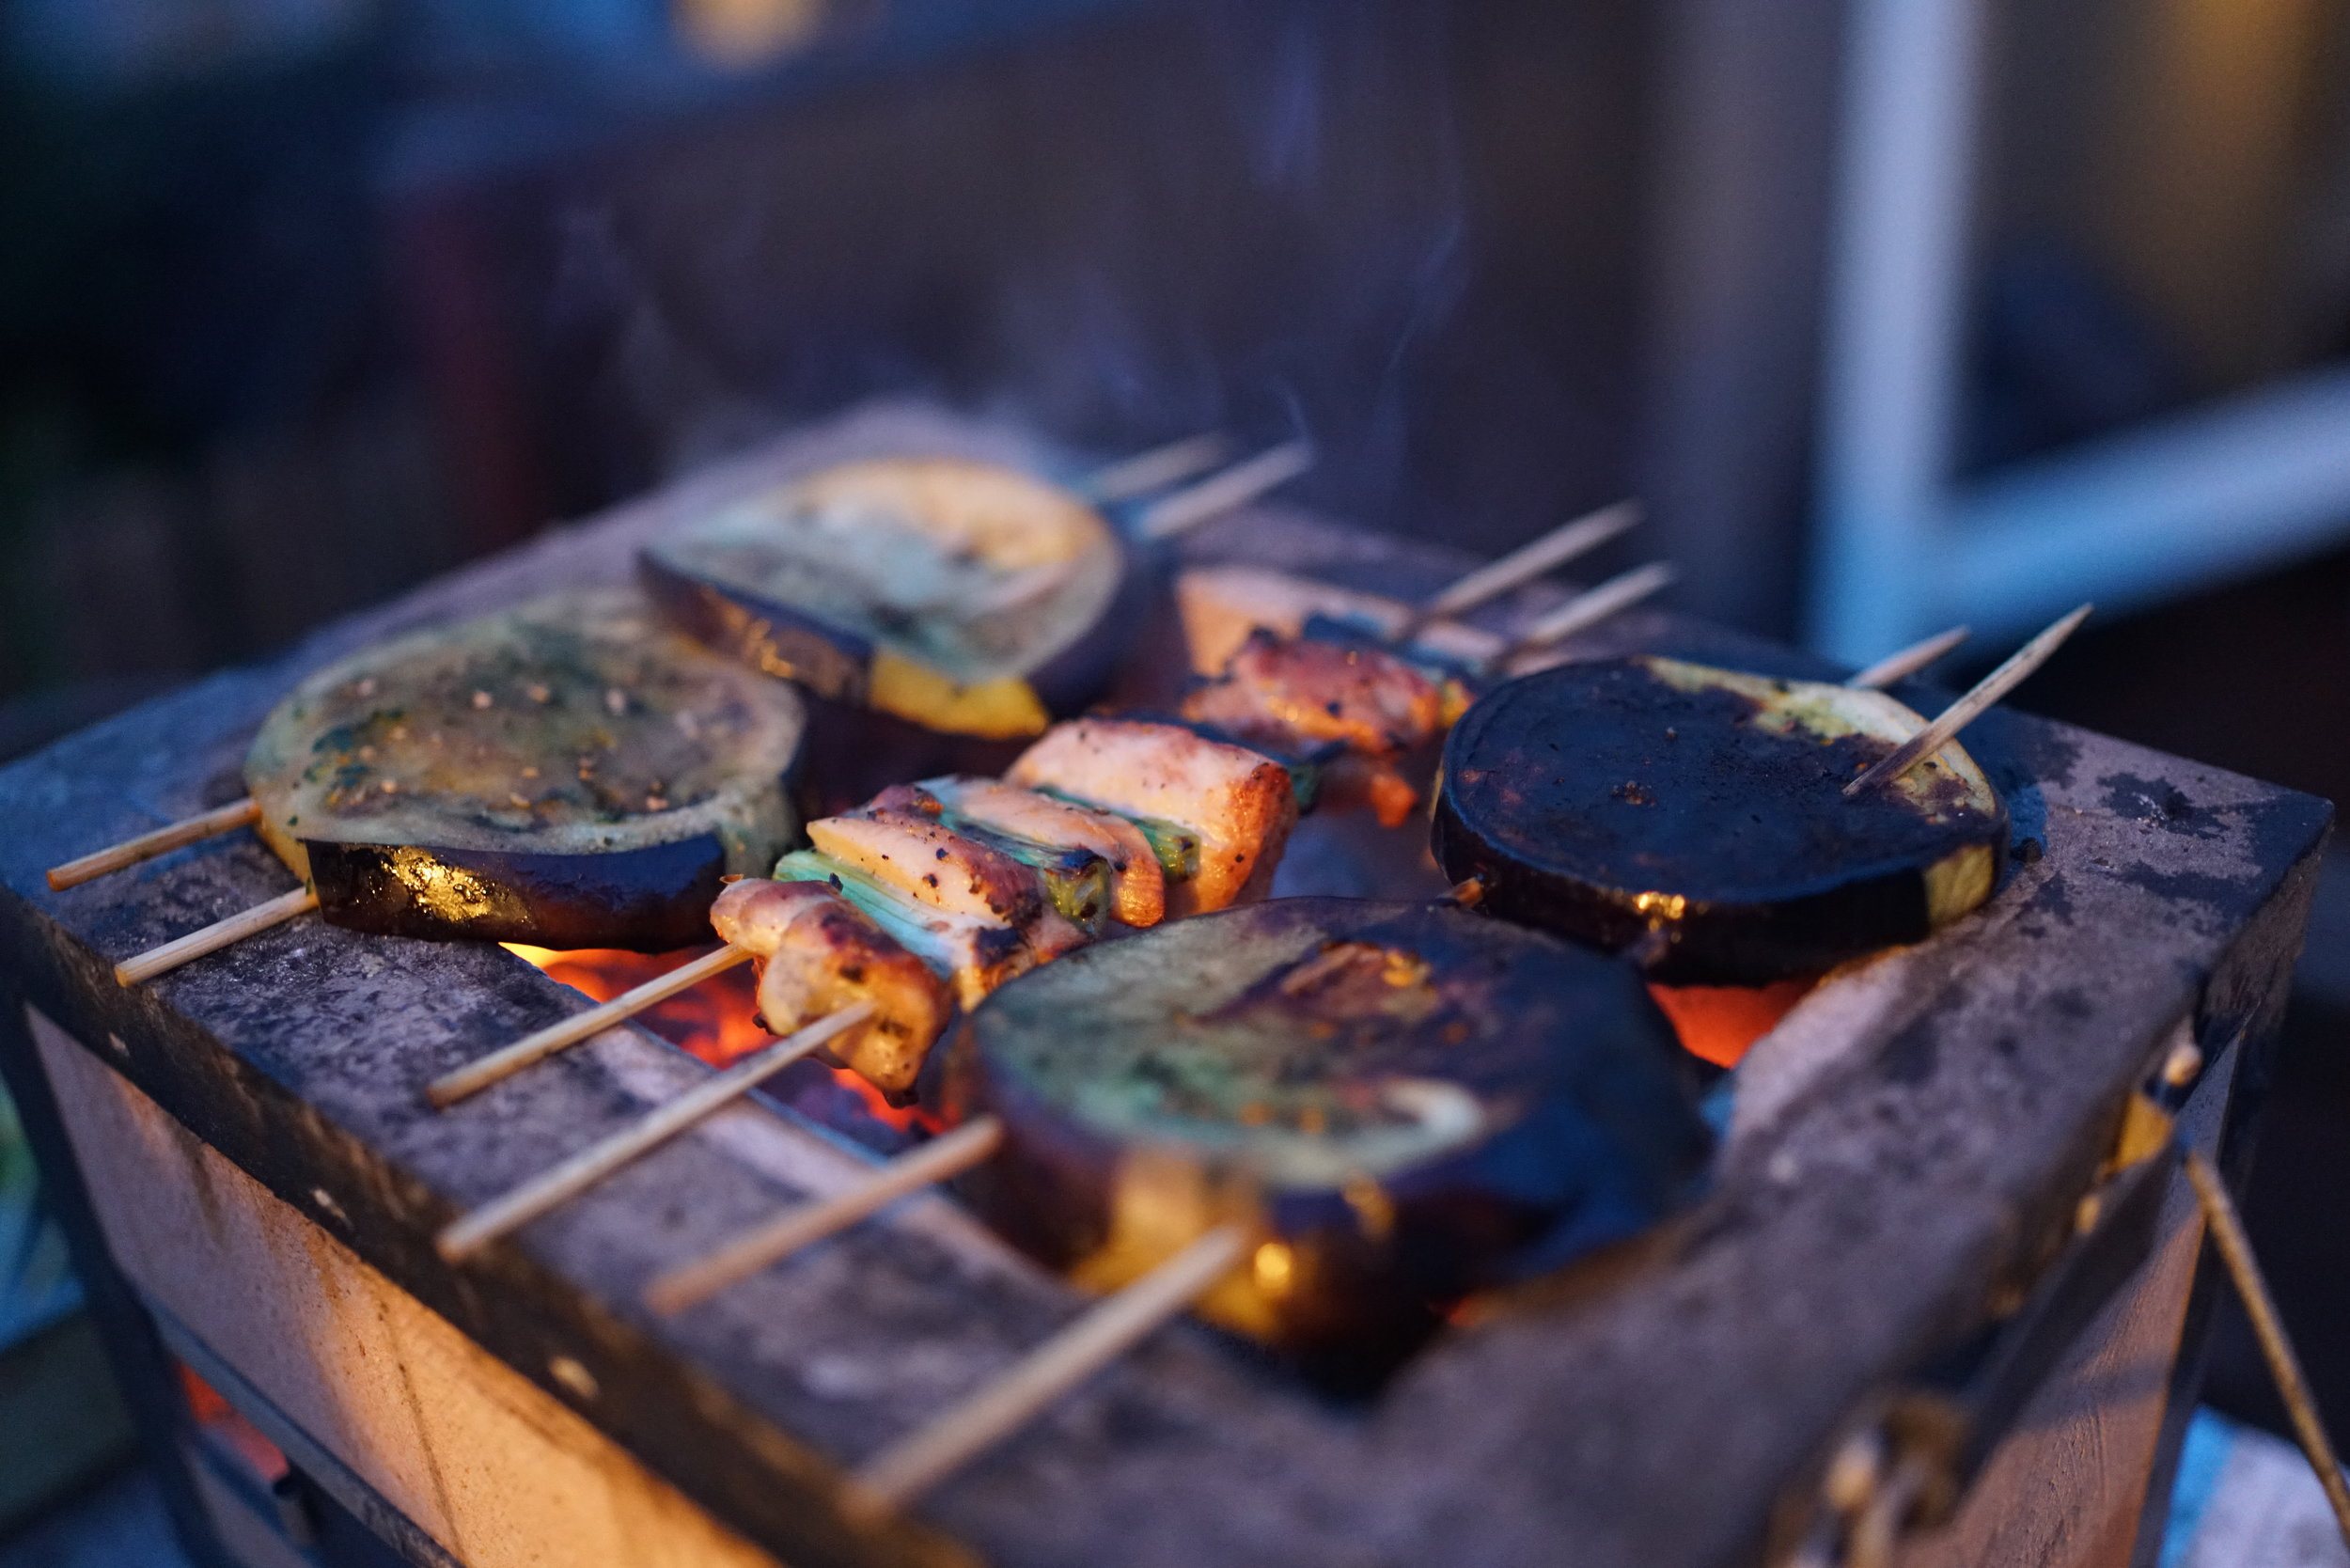 Making sure your meat is the right temperature enhances flavor… and safety!